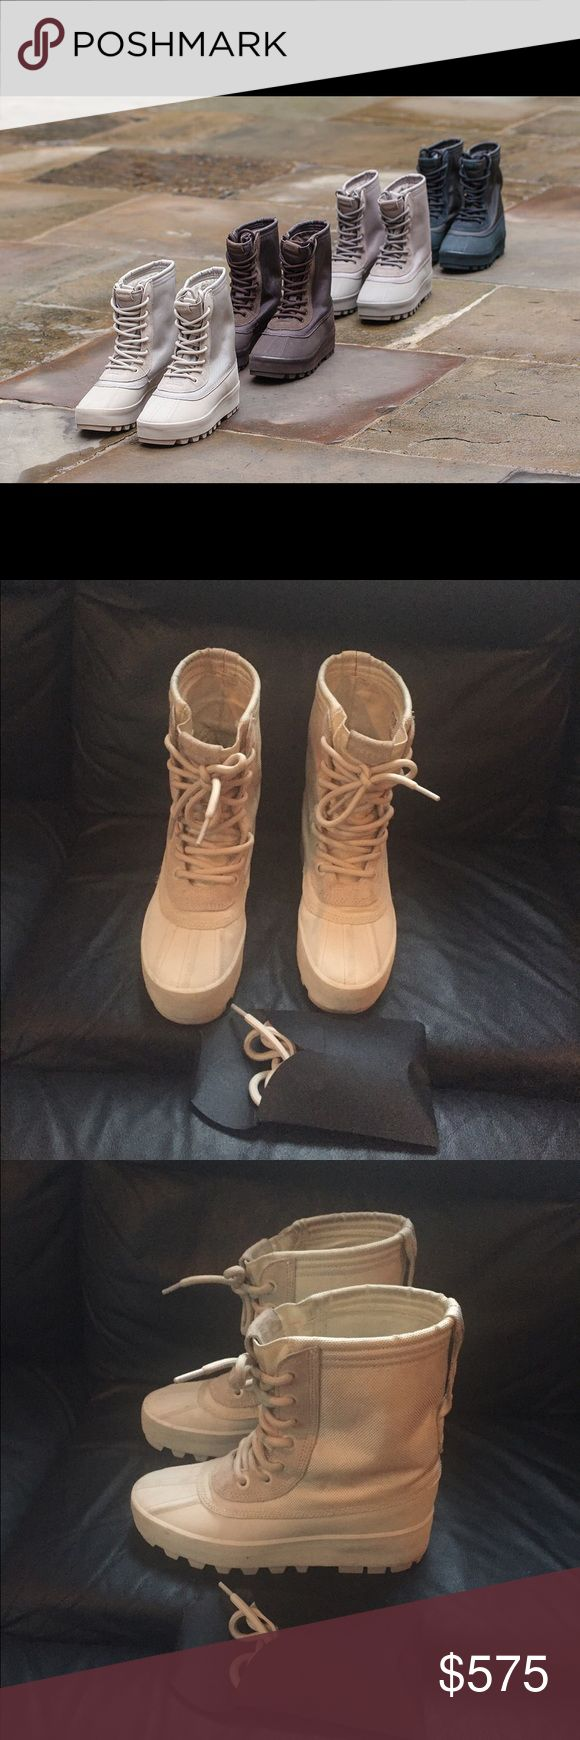 ADIDAS  YEEZY BOOST 950 BOOT AUTHENTIC Adidas YEEZY BOOST 950 BOOT ... Size:5.5 [Worn Twice].... (Extra Laces Included)Color:Moonrock...[Make An Offer]🅿️🅿️ Yeezy Shoes Lace Up Boots